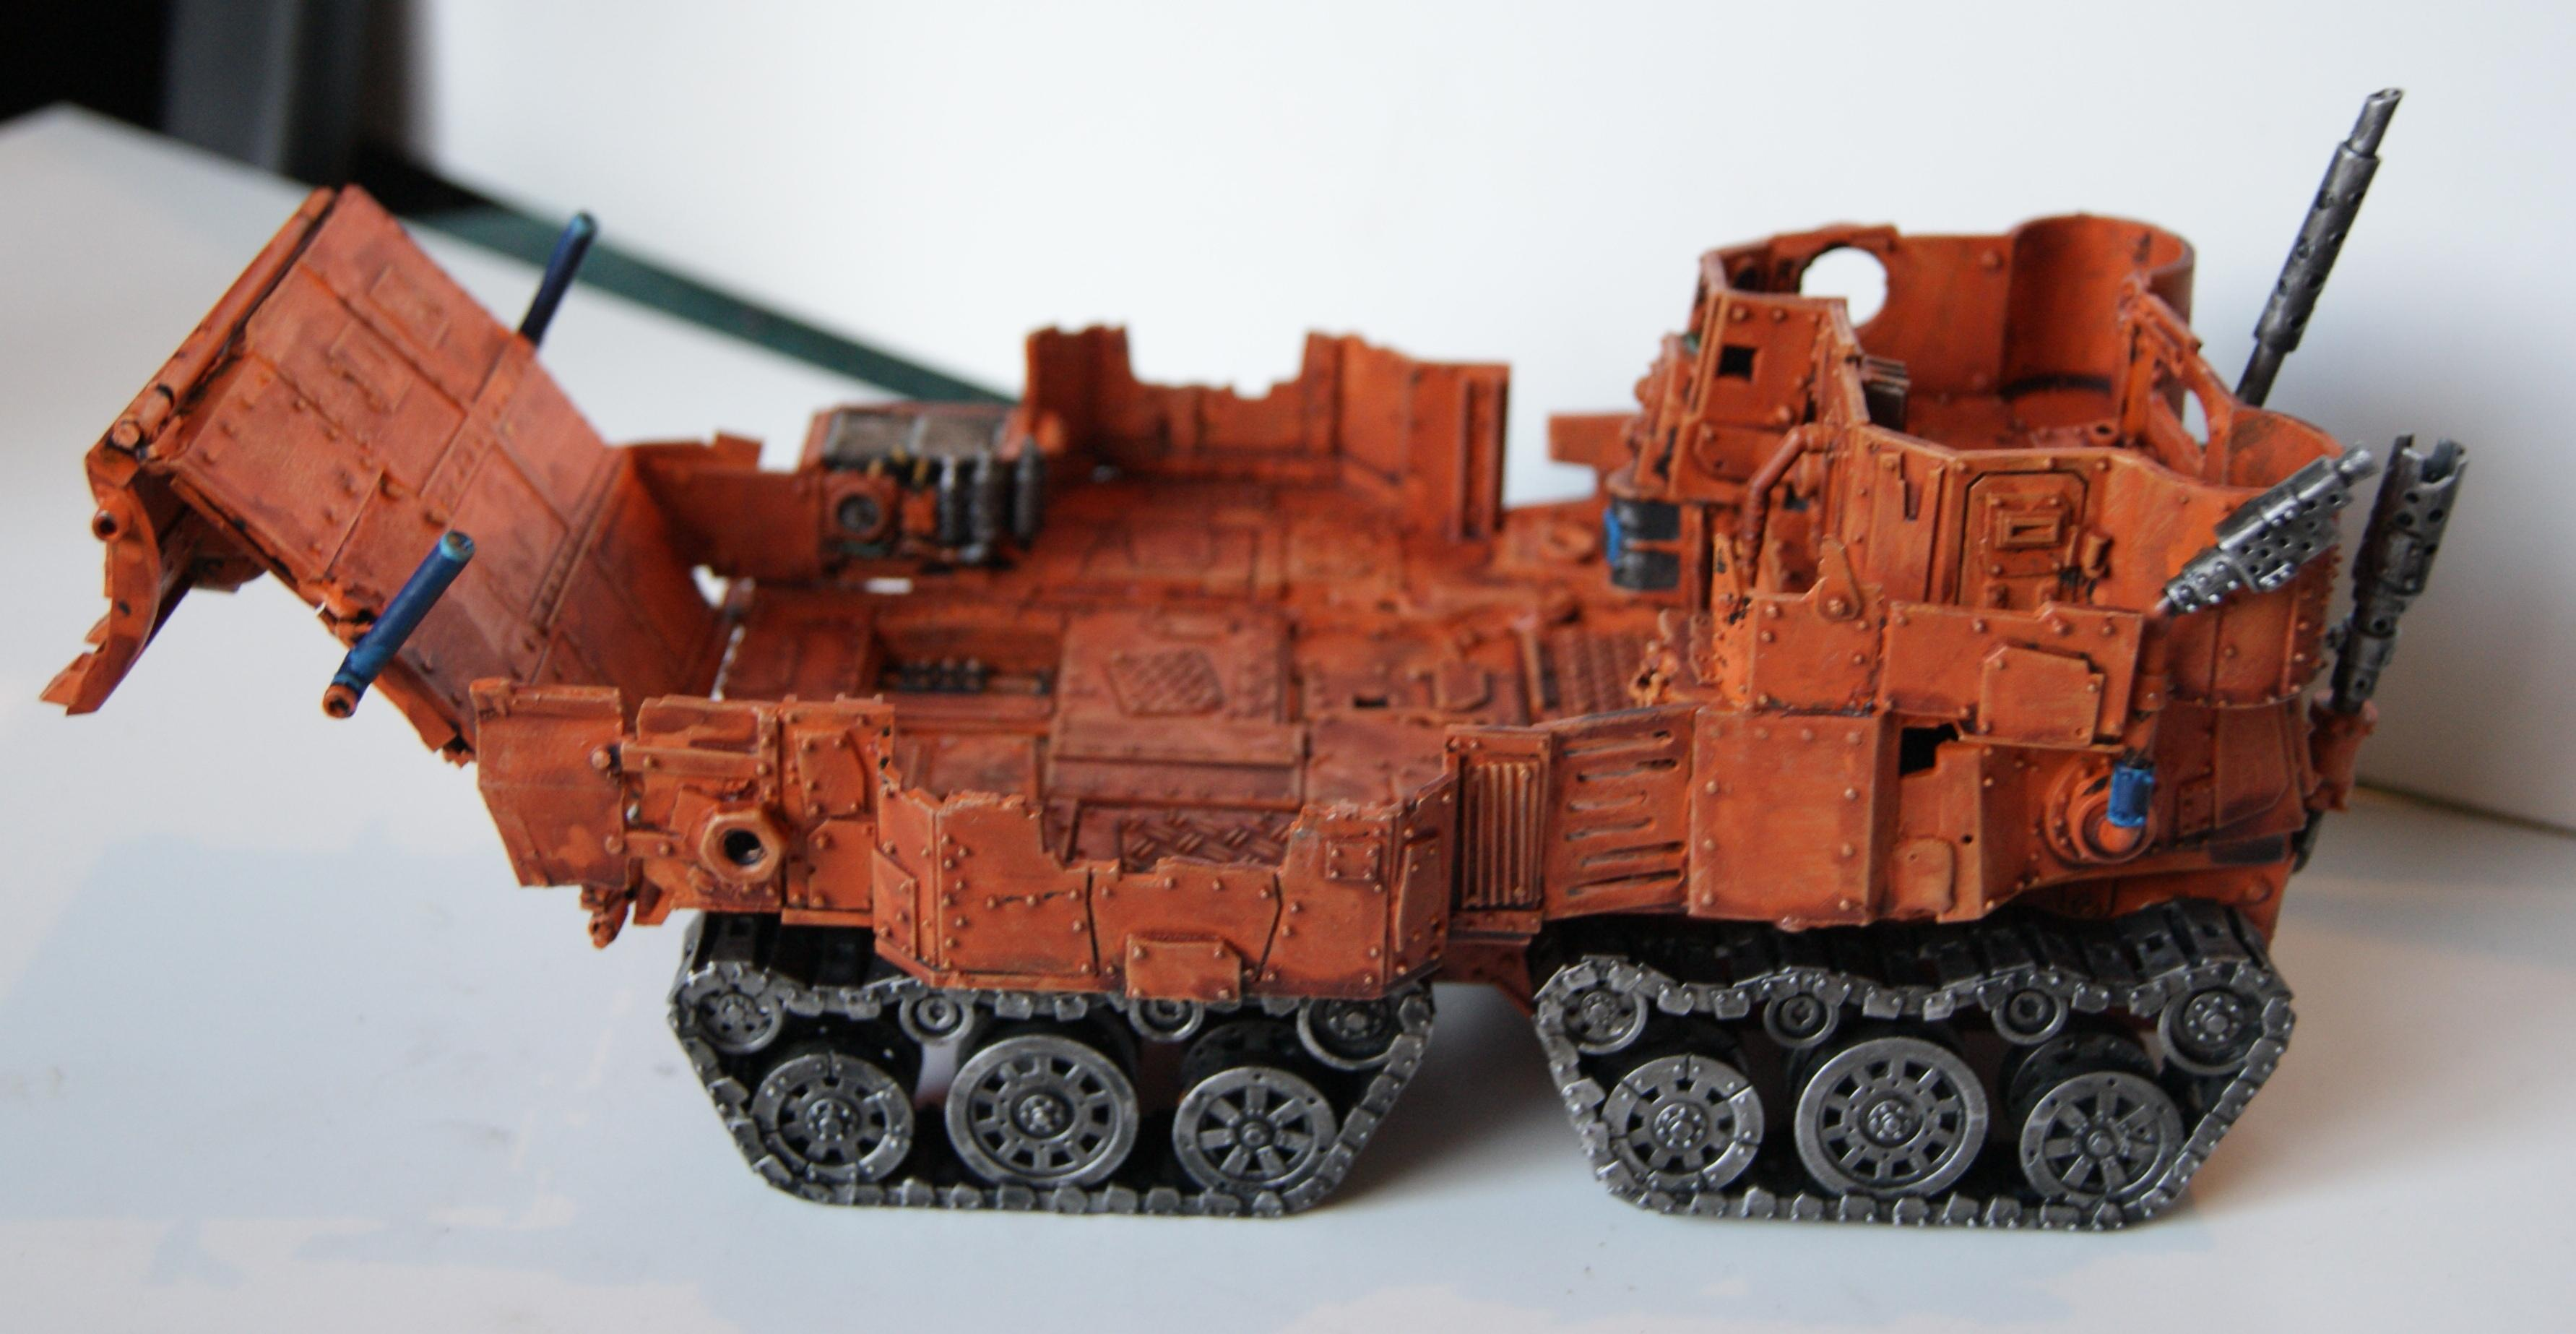 Battlewagon, Conversion, Grot Rebellion, Grot Rebels, Warhammer 40,000, Wi